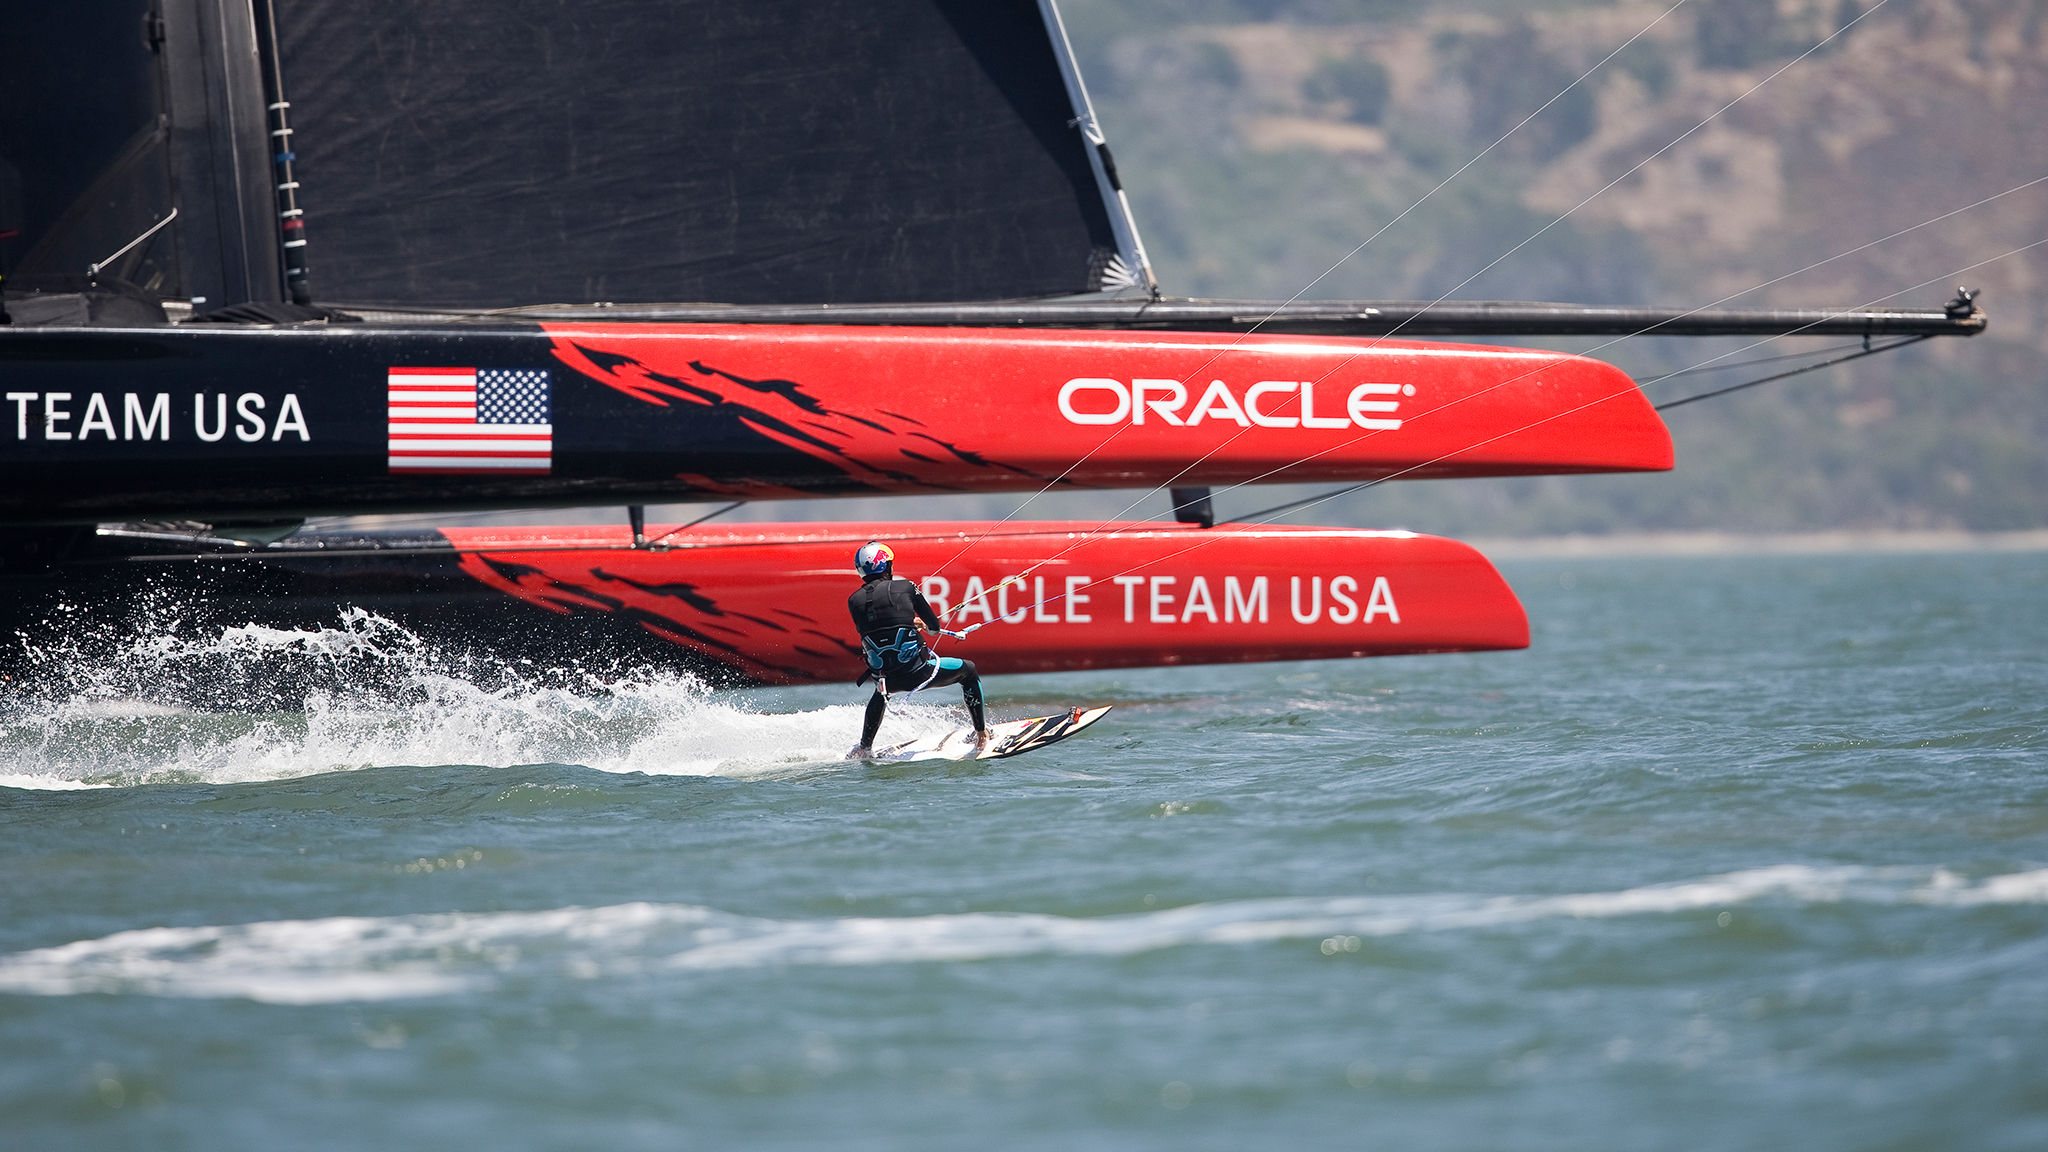 Up Against Oracle